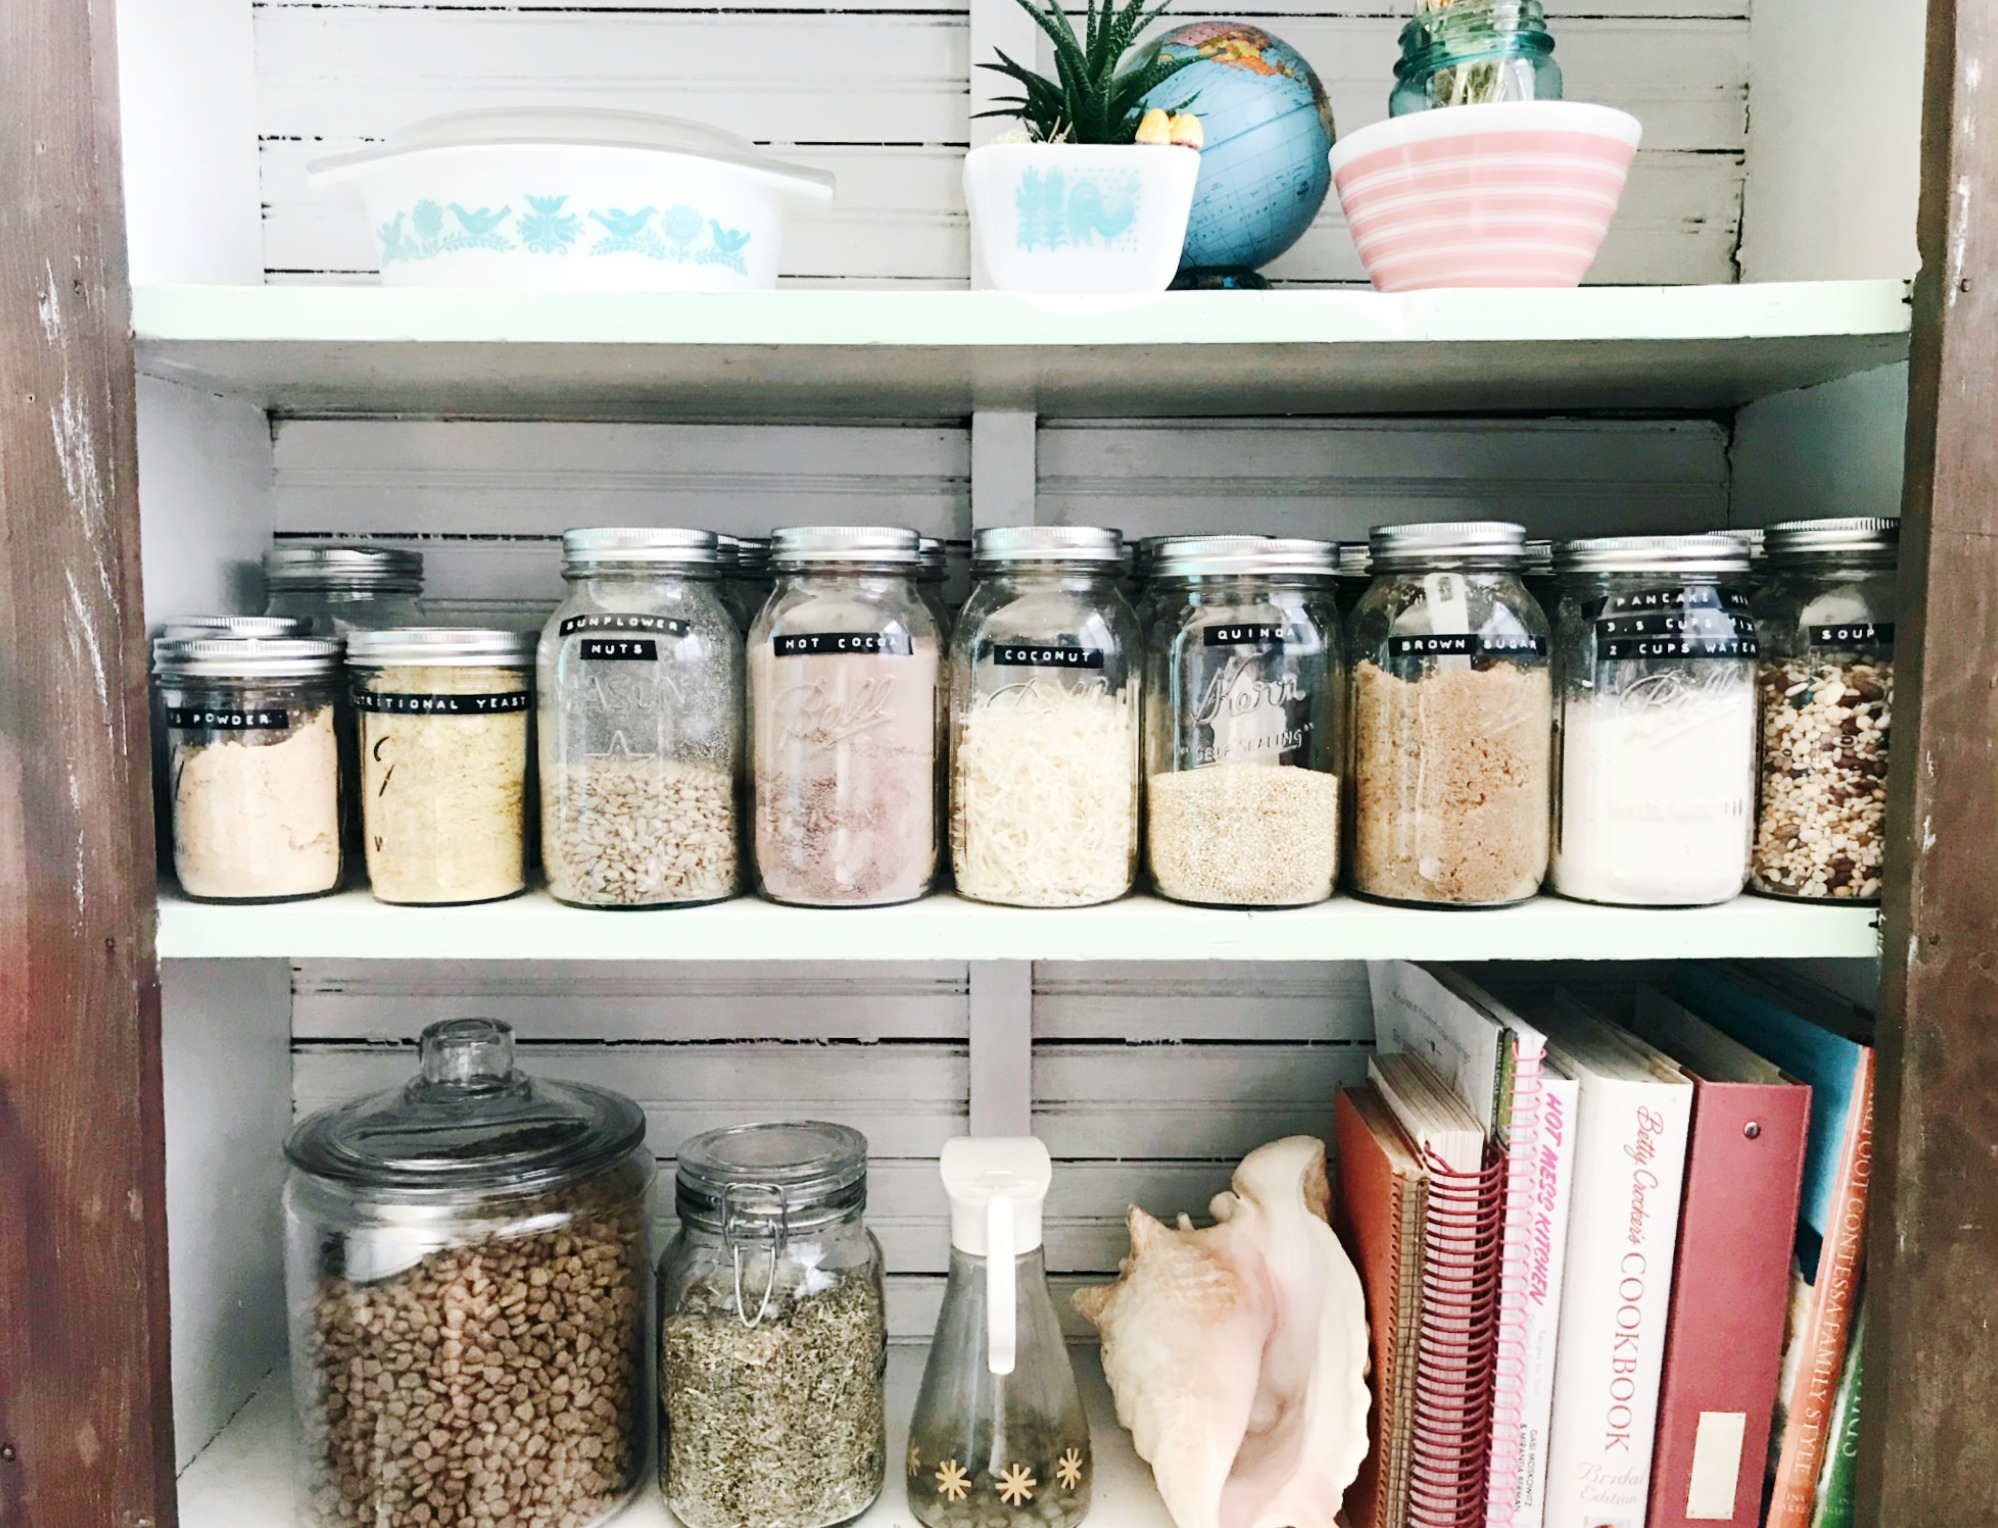 How to Organize your Pantry with Mason Jars from HPrallandCo.com